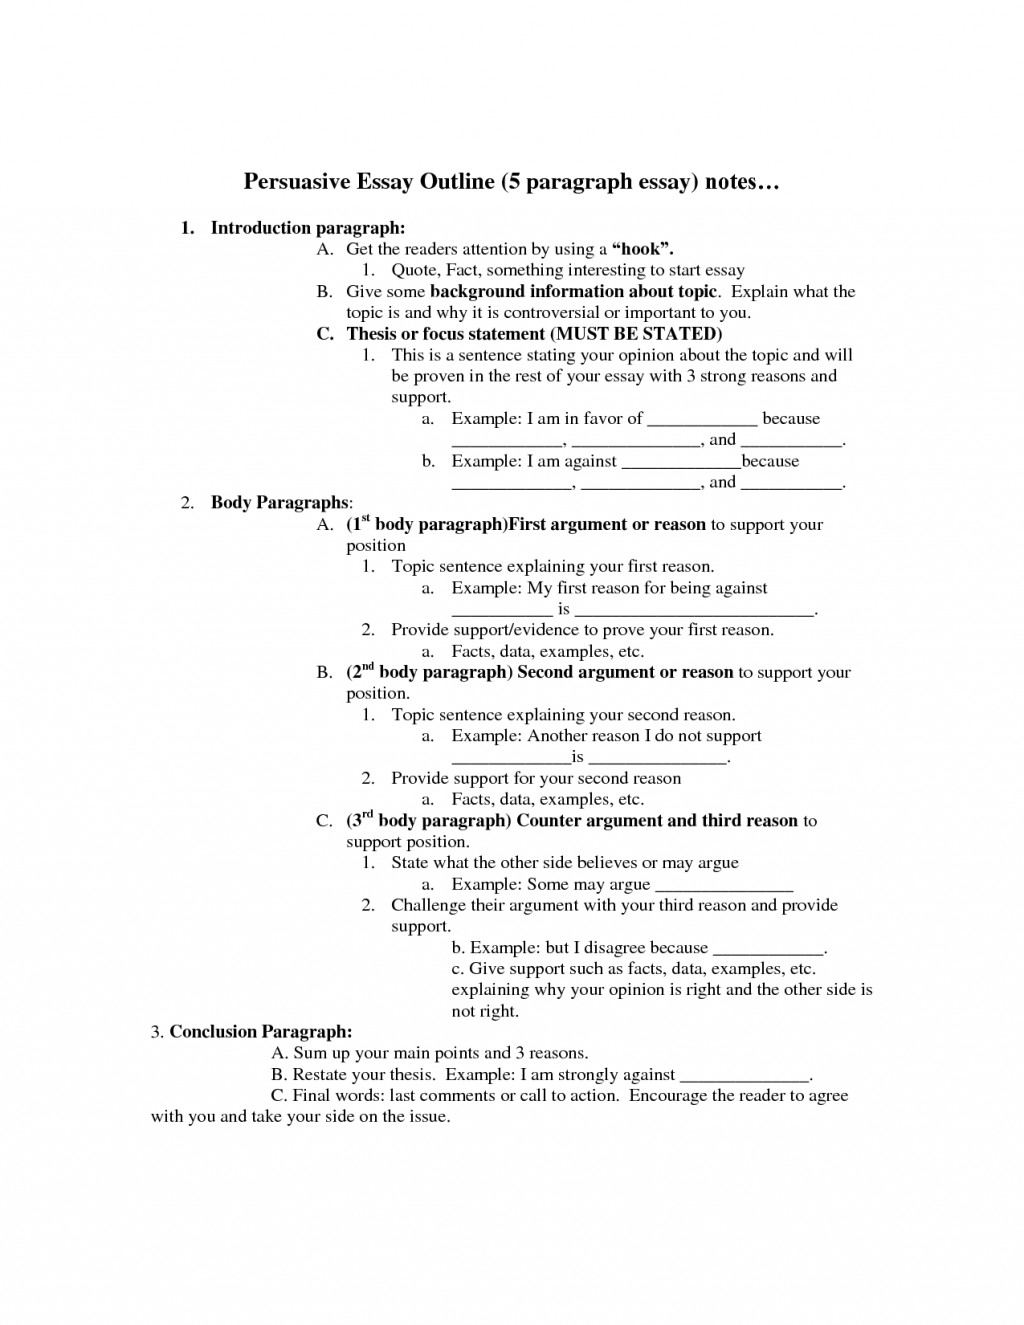 010 Outlining An Essay Best Exercise Outline Of Argumentative Classical Pattern Large